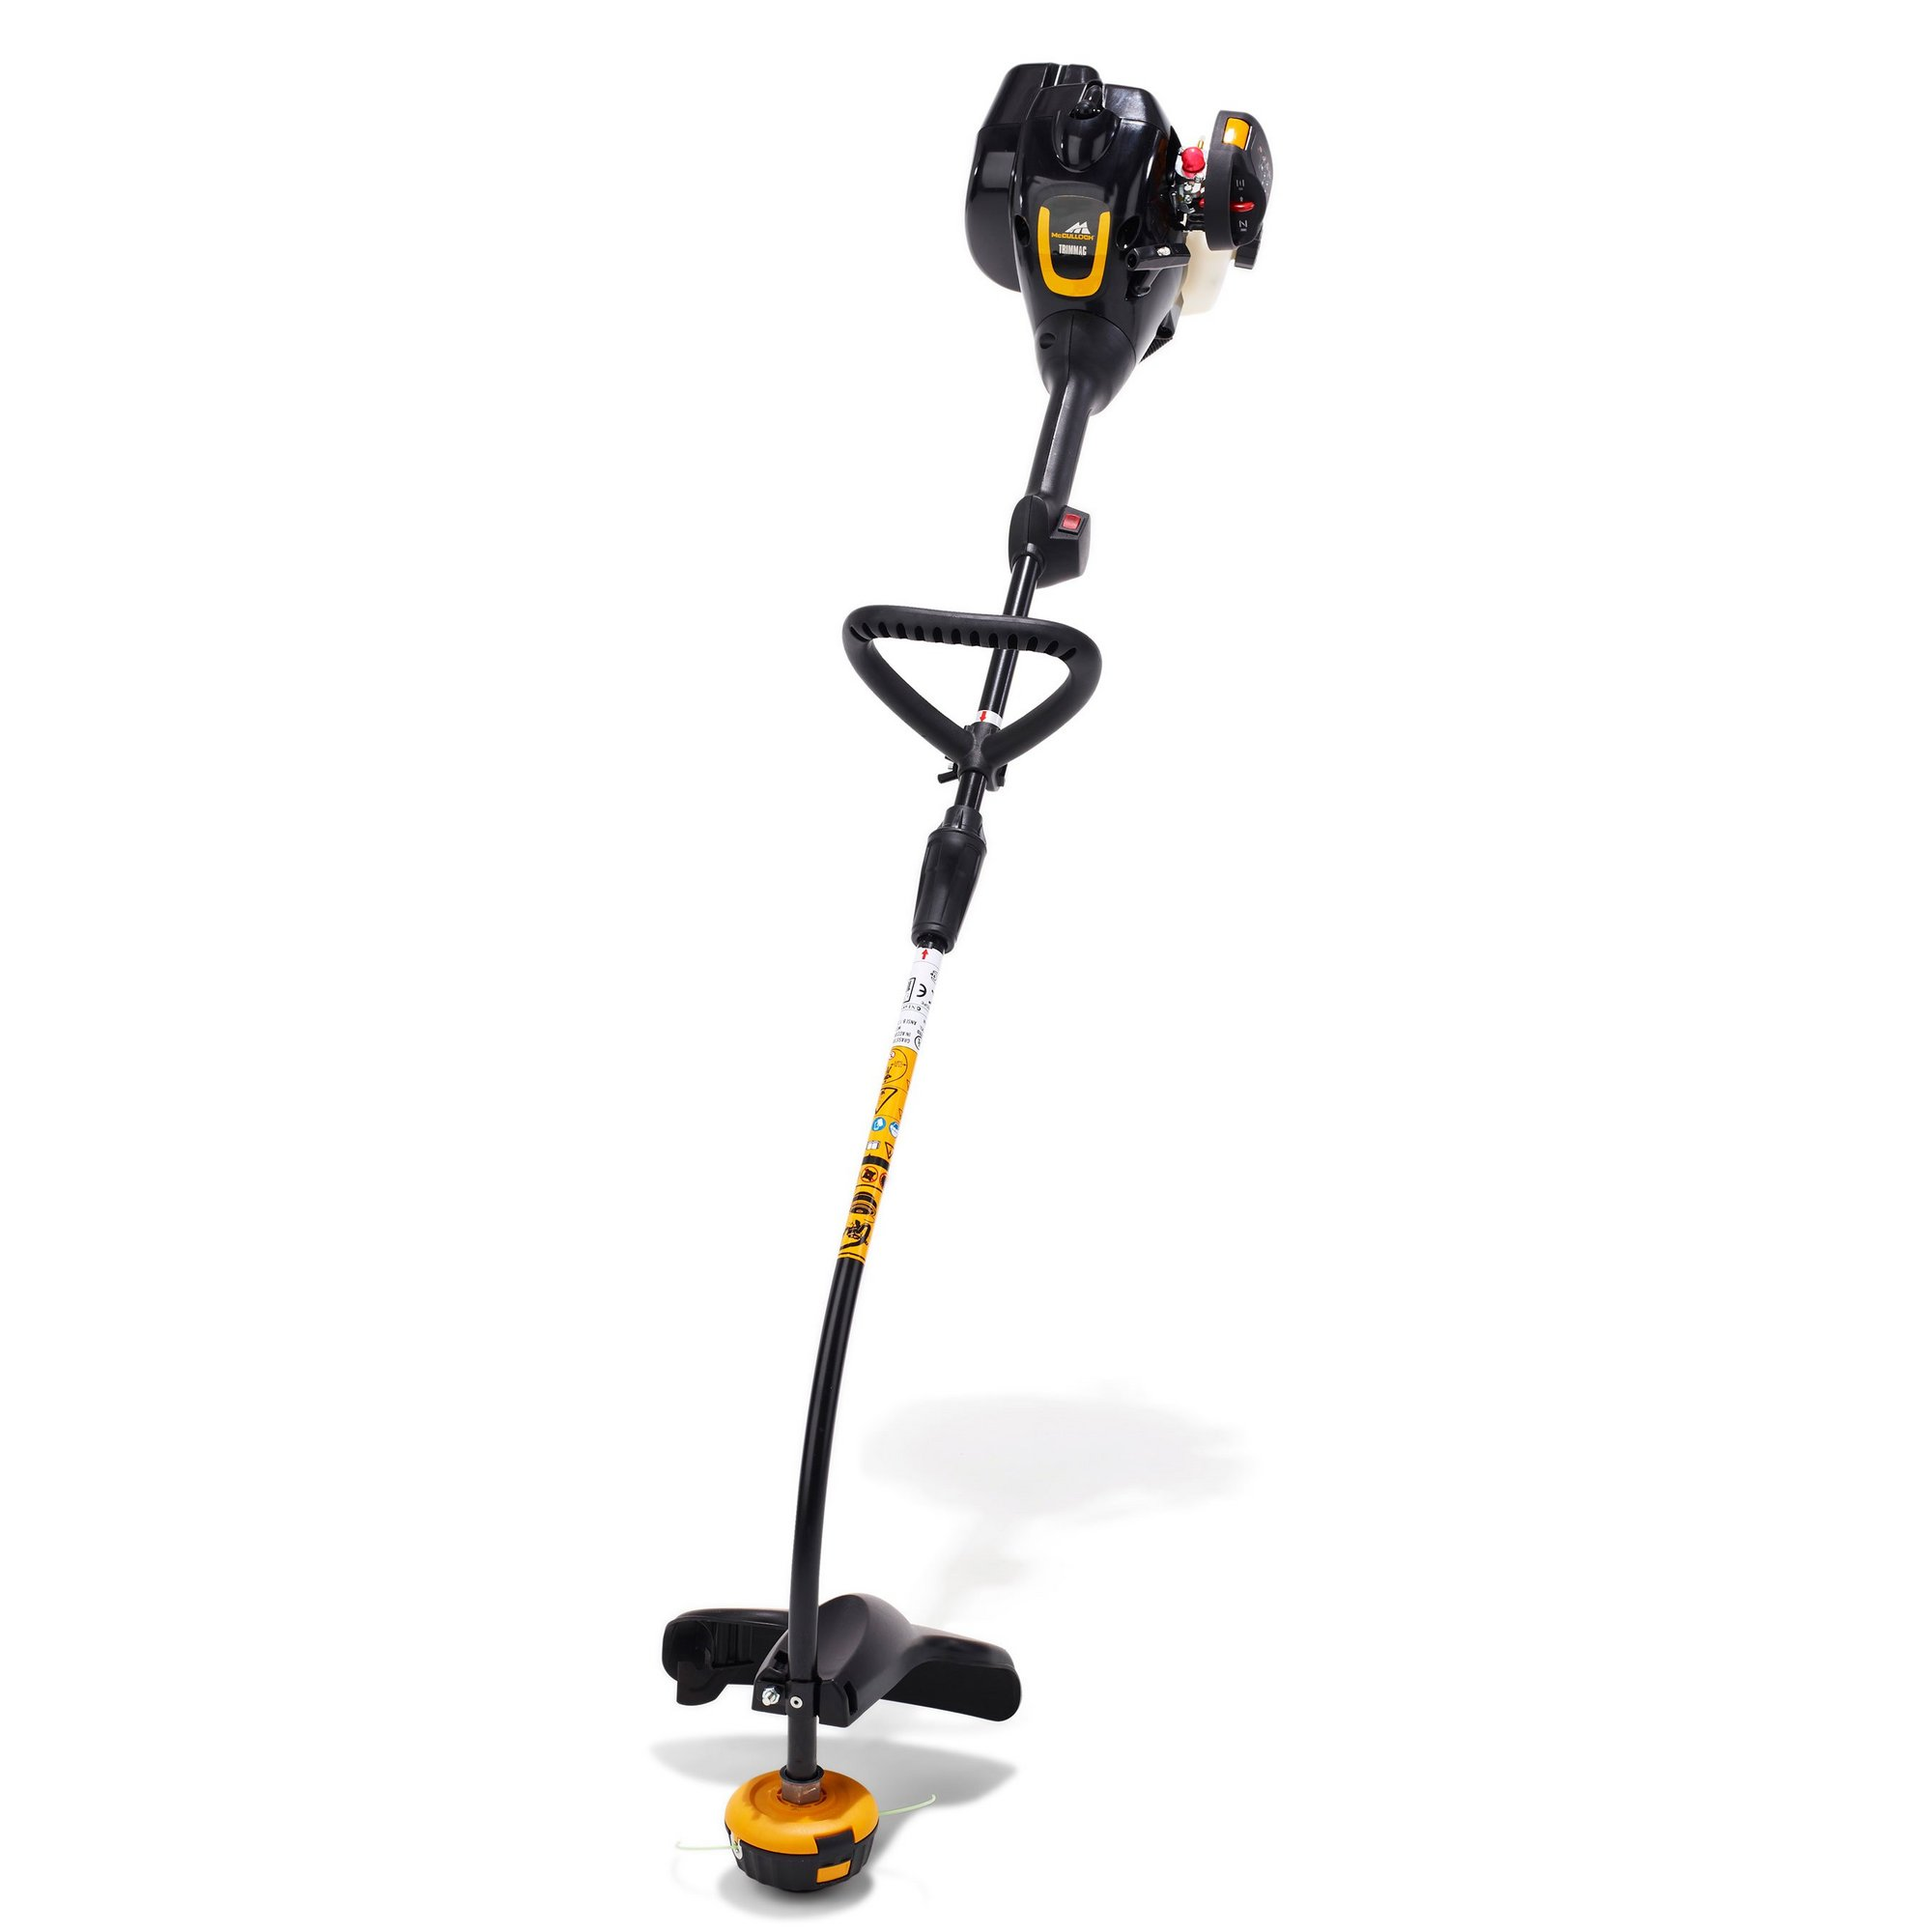 Image of McCulloch TrimMac Petrol Line Trimmer